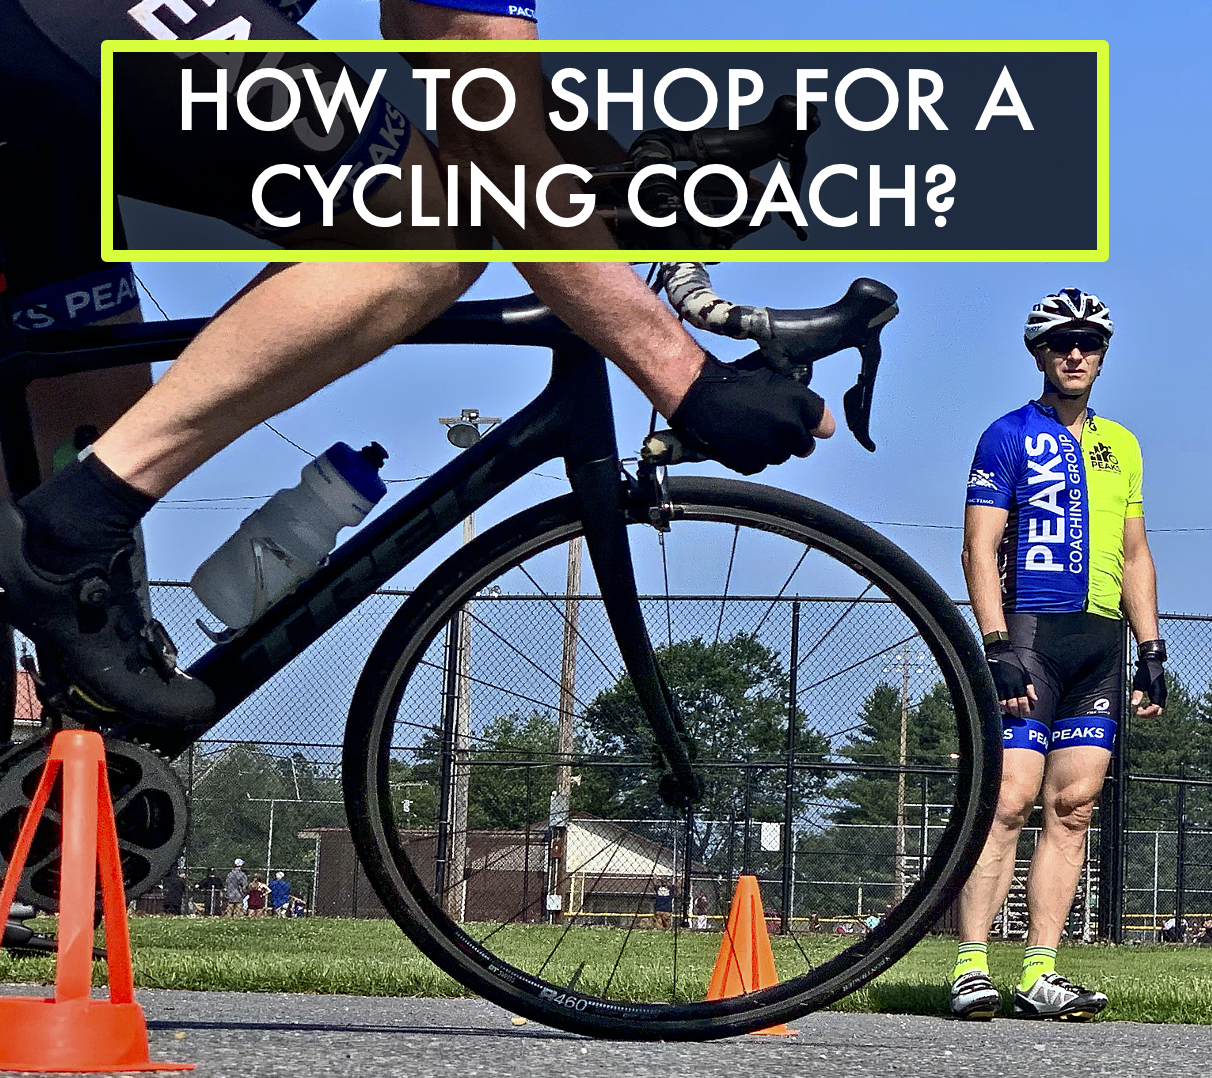 how to shop for a cycling coach